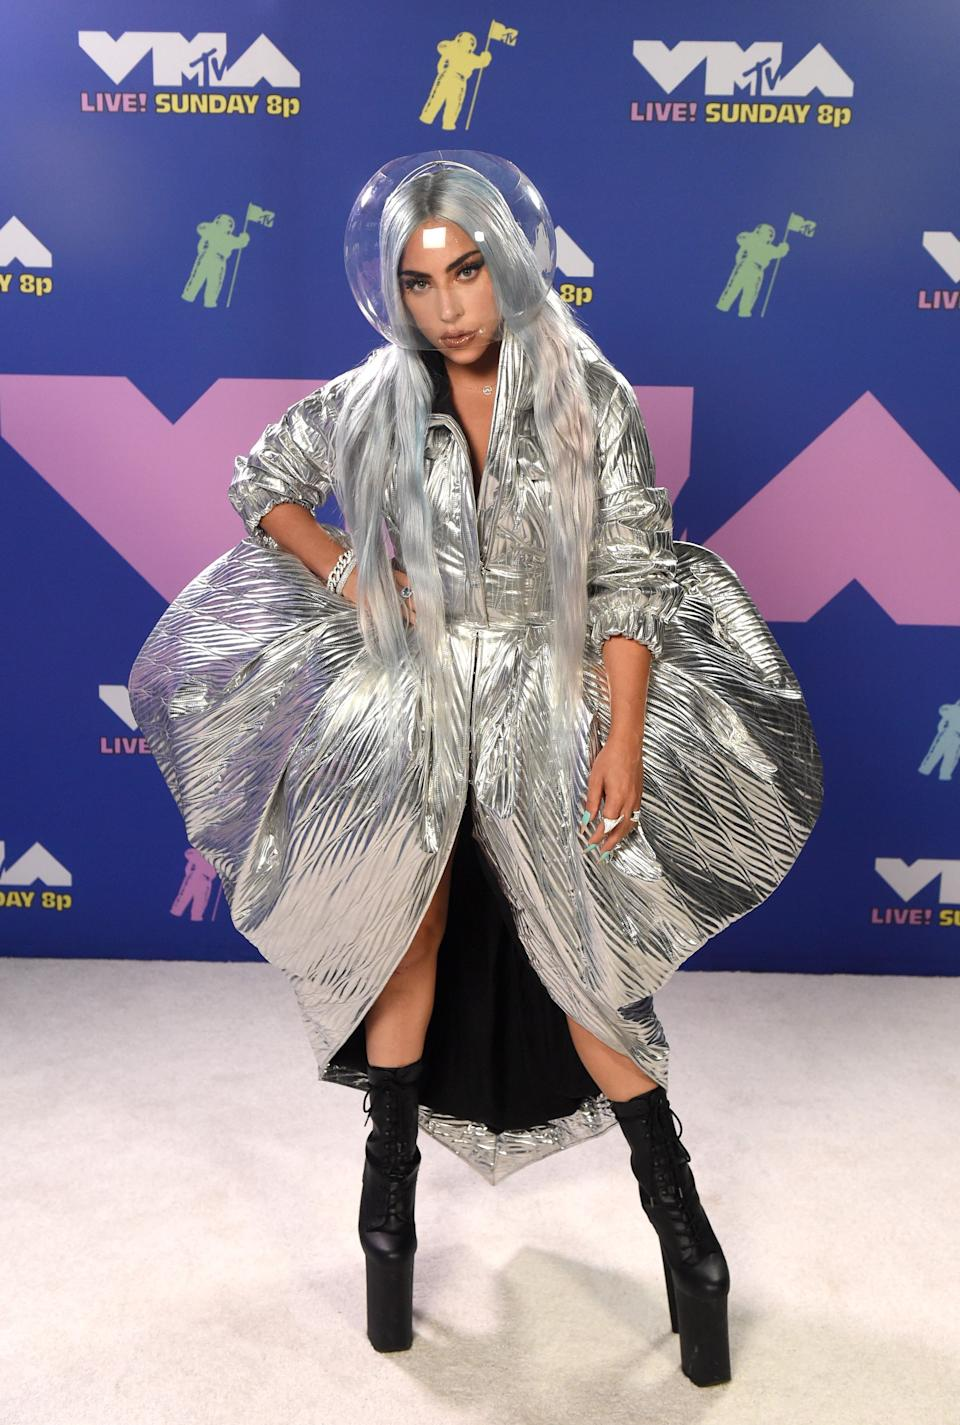 Lady Gaga kept her red carpet outfit COVID-safe with what looked like a space helmet with a futuristic silver dress. Photo: Getty